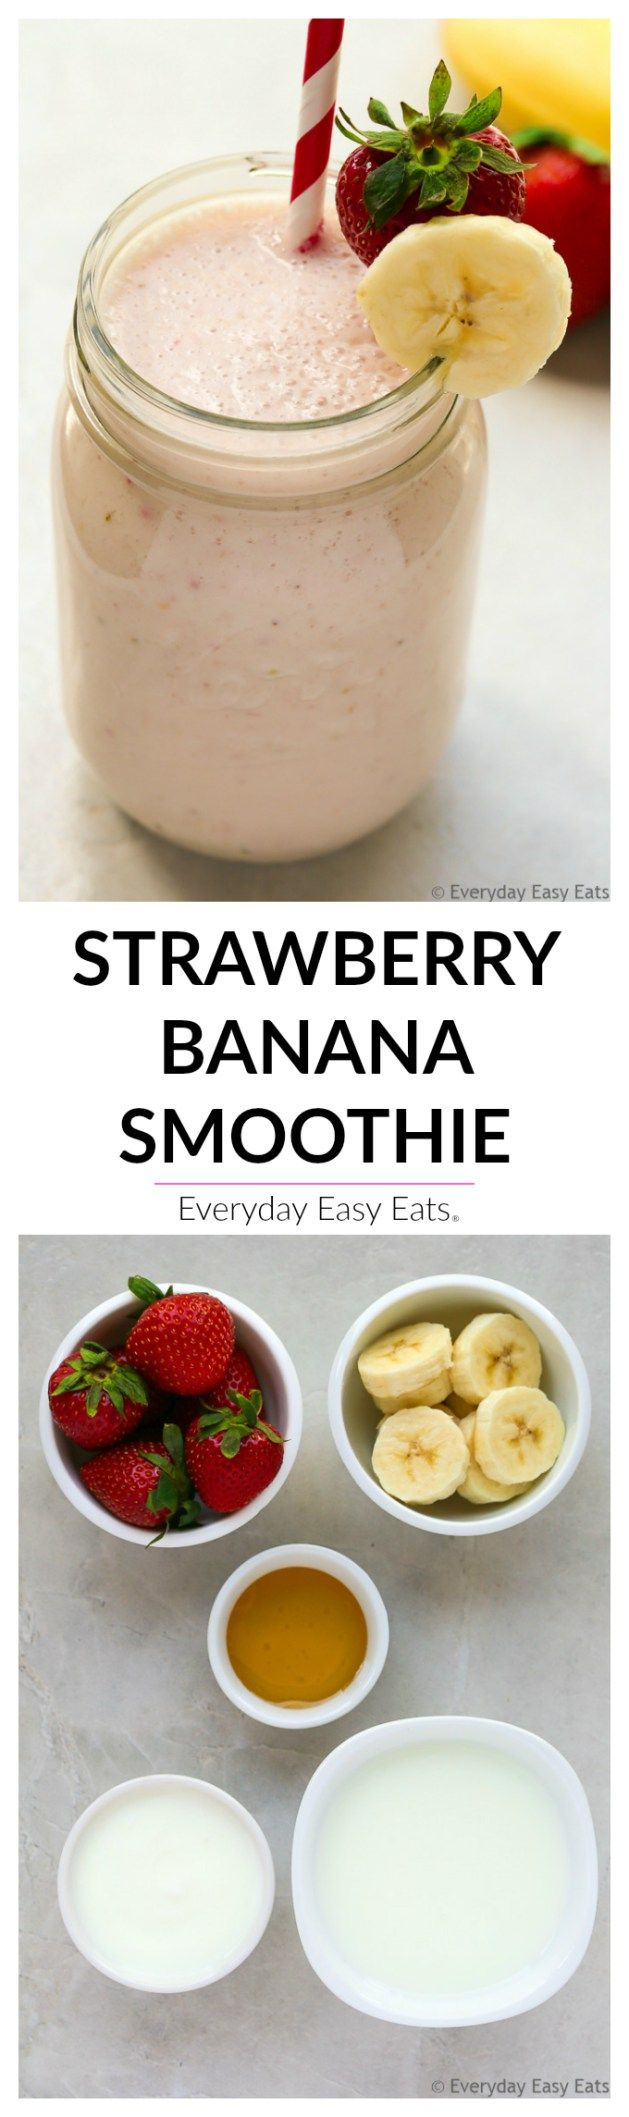 5 ingredients and 5 minutes are all you need to make this nutritious Strawberry Banana Smoothie recipe. The perfect grab-and-go breakfast or snack.